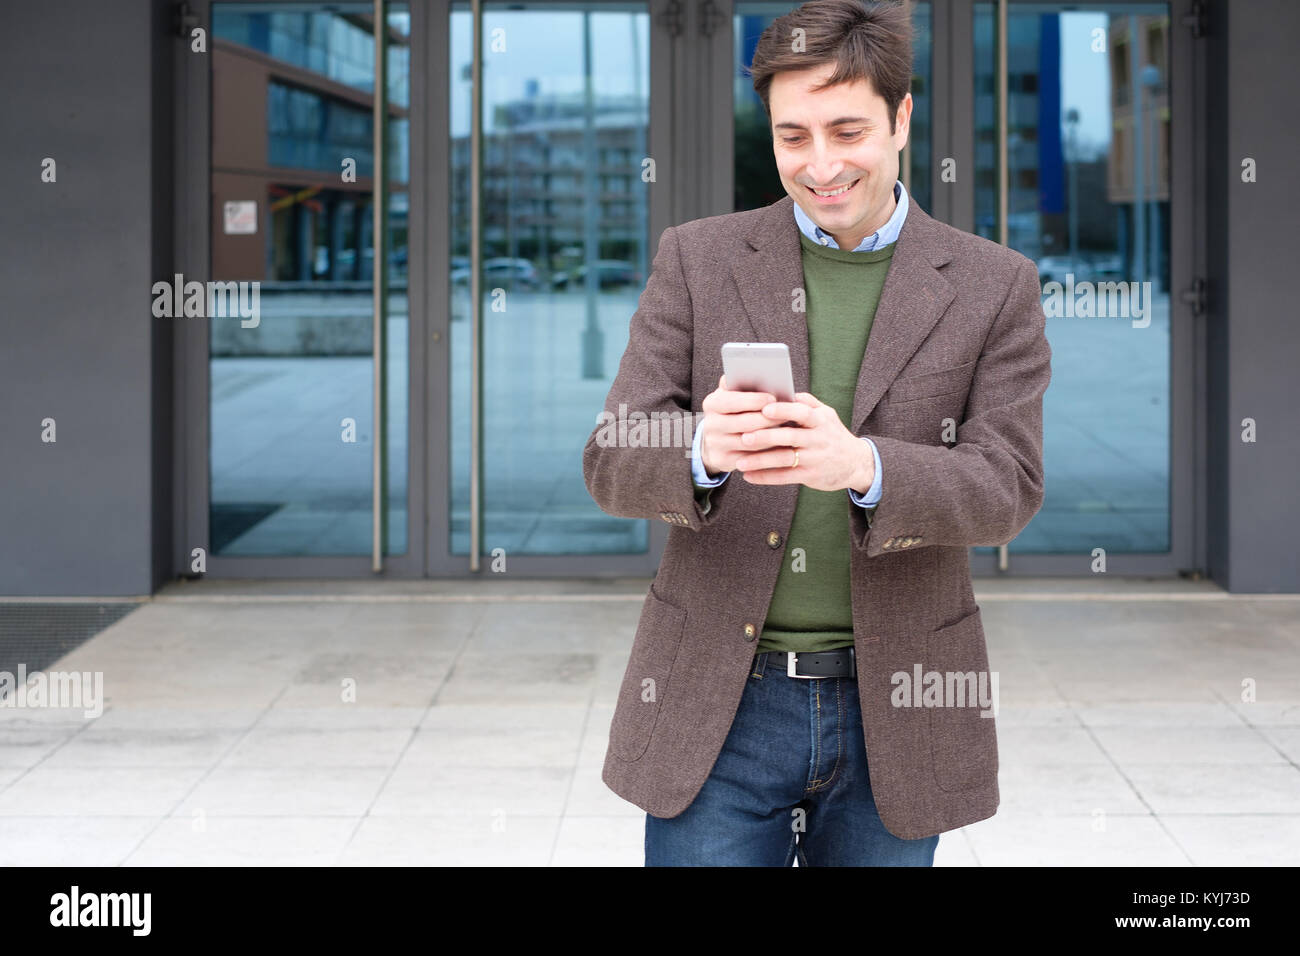 Man texting a message on his smartphone - Stock Image